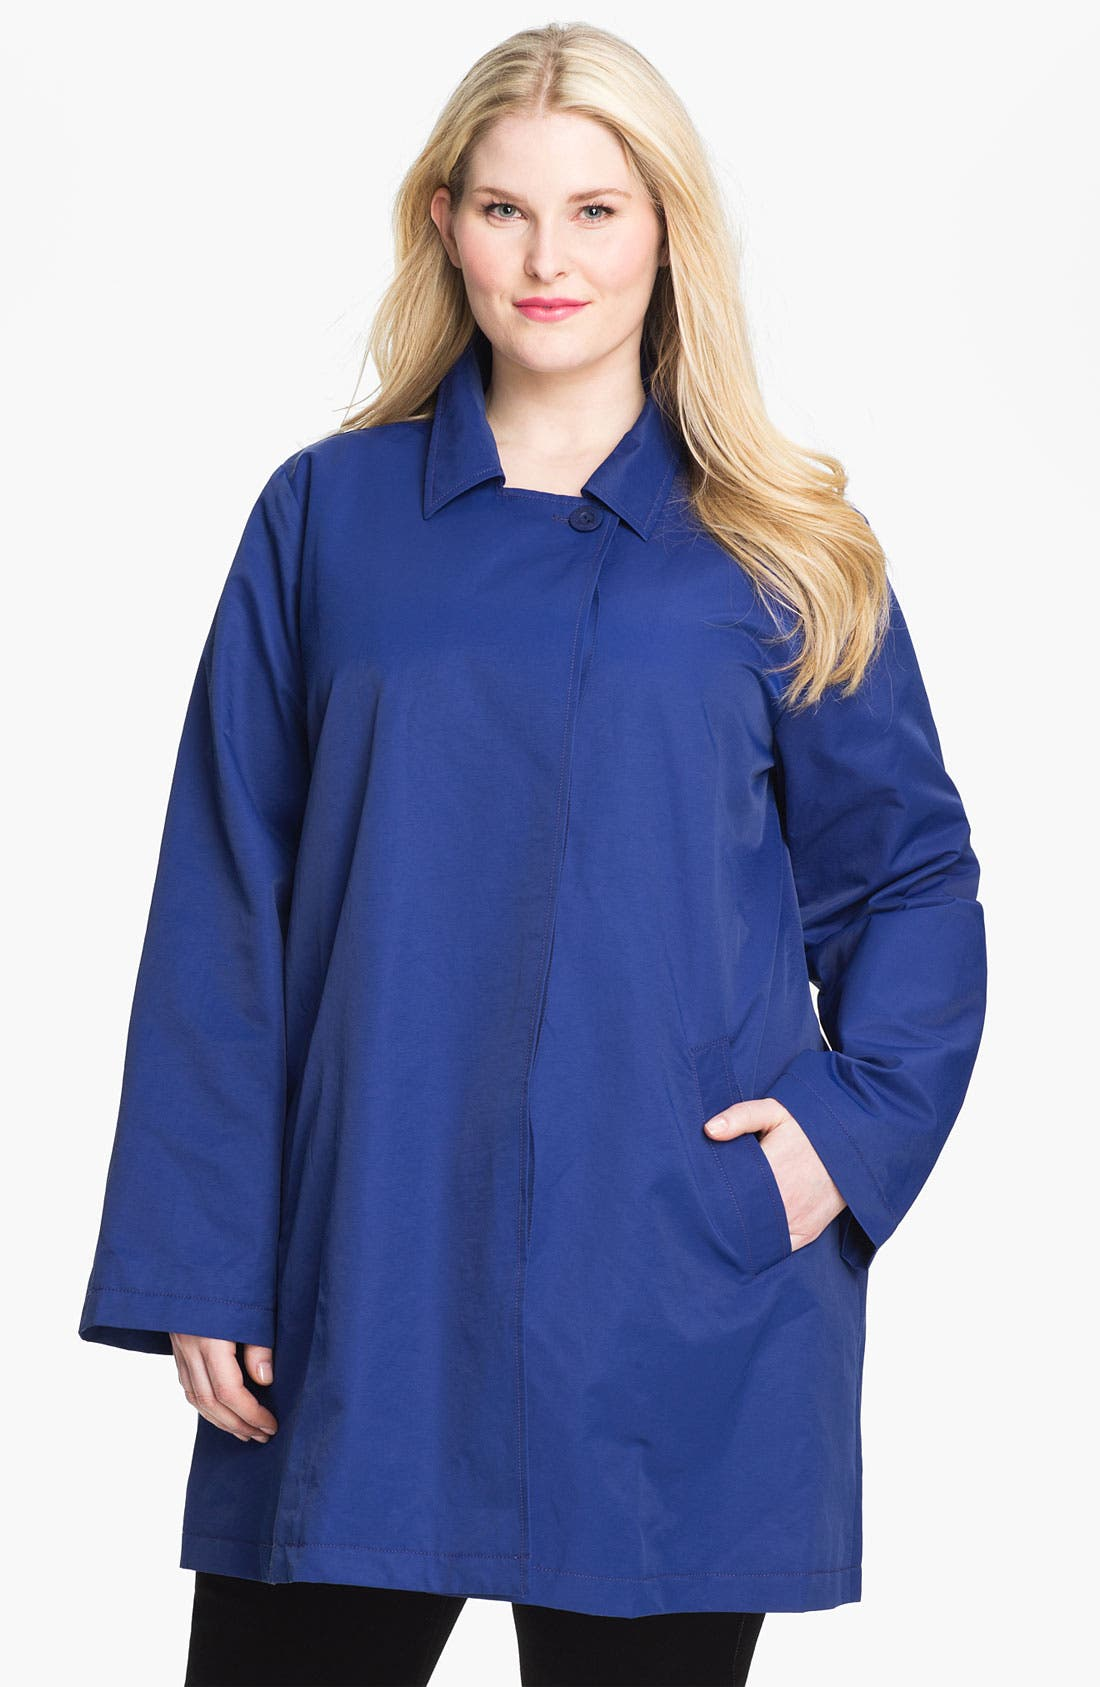 Main Image - Eileen Fisher Classic Collar A-Line Coat (Plus)